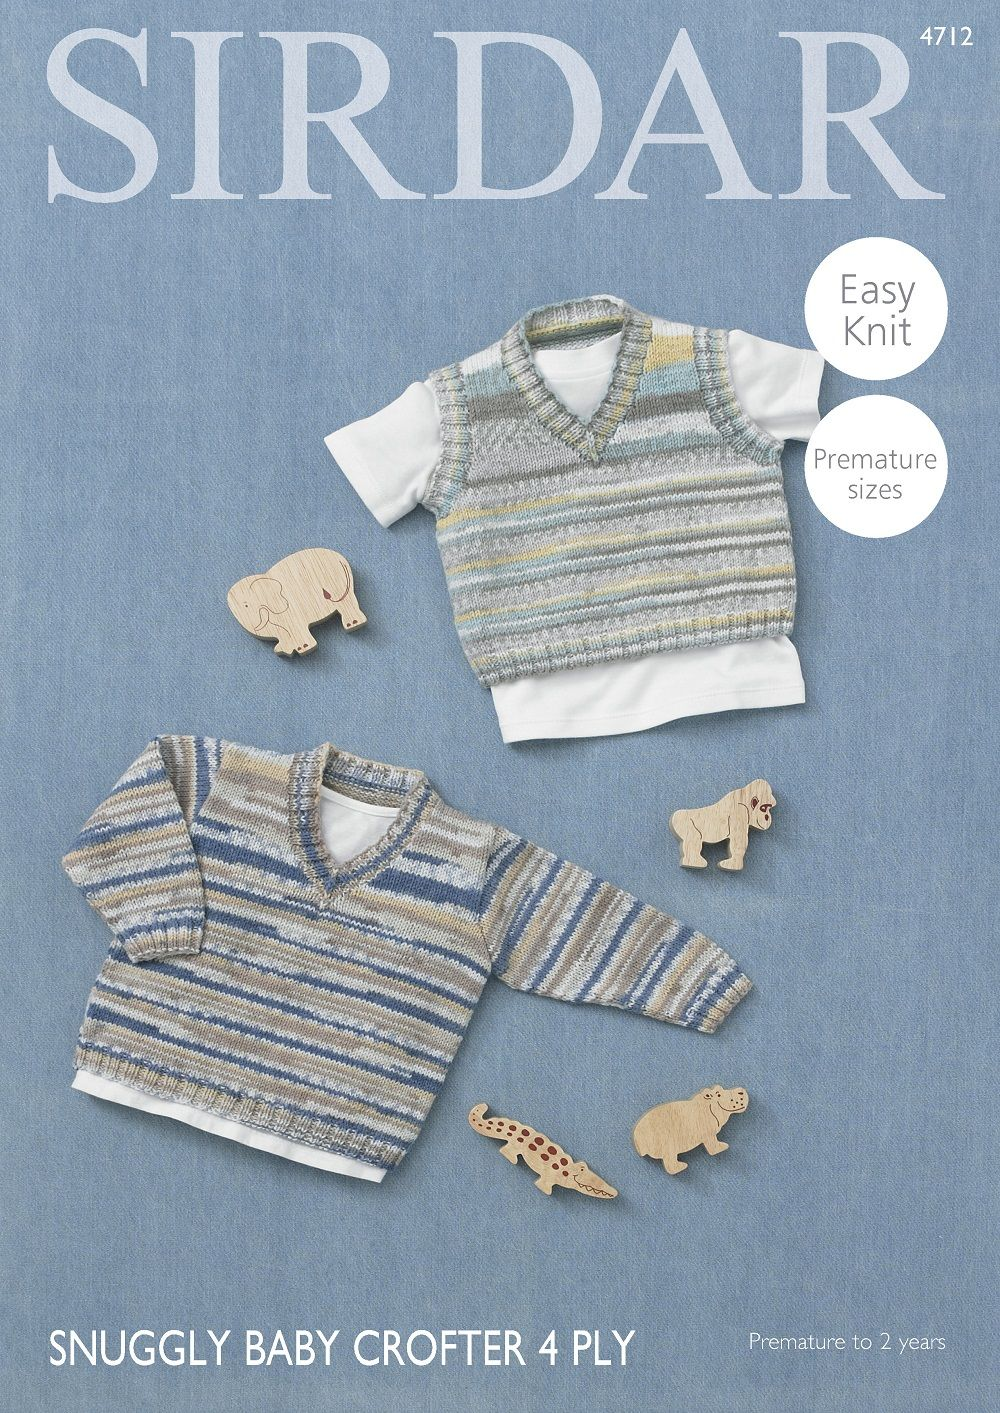 c7bf596fa Sirdar Babies Sweater & Tank Top Knitting Pattern in Baby Crofter 4ply  4712P PDF